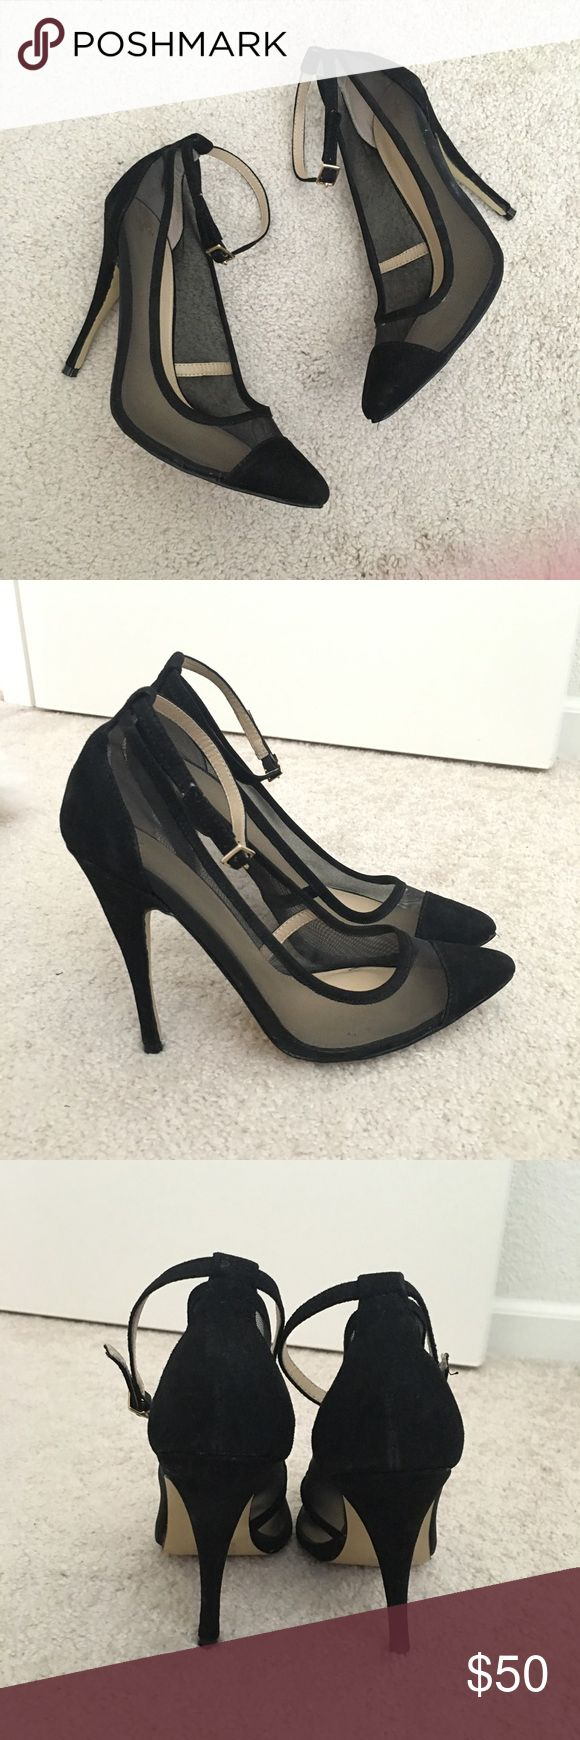 Black Mesh Pointed Toe Ankle Strap Heels Purchased from Victoria Secret website but item doesn't have brand except the angel logo. Worn twice. Excellent condition, only wear is on sole. Man made materials. 4.5 inch heel height. Shoes Heels